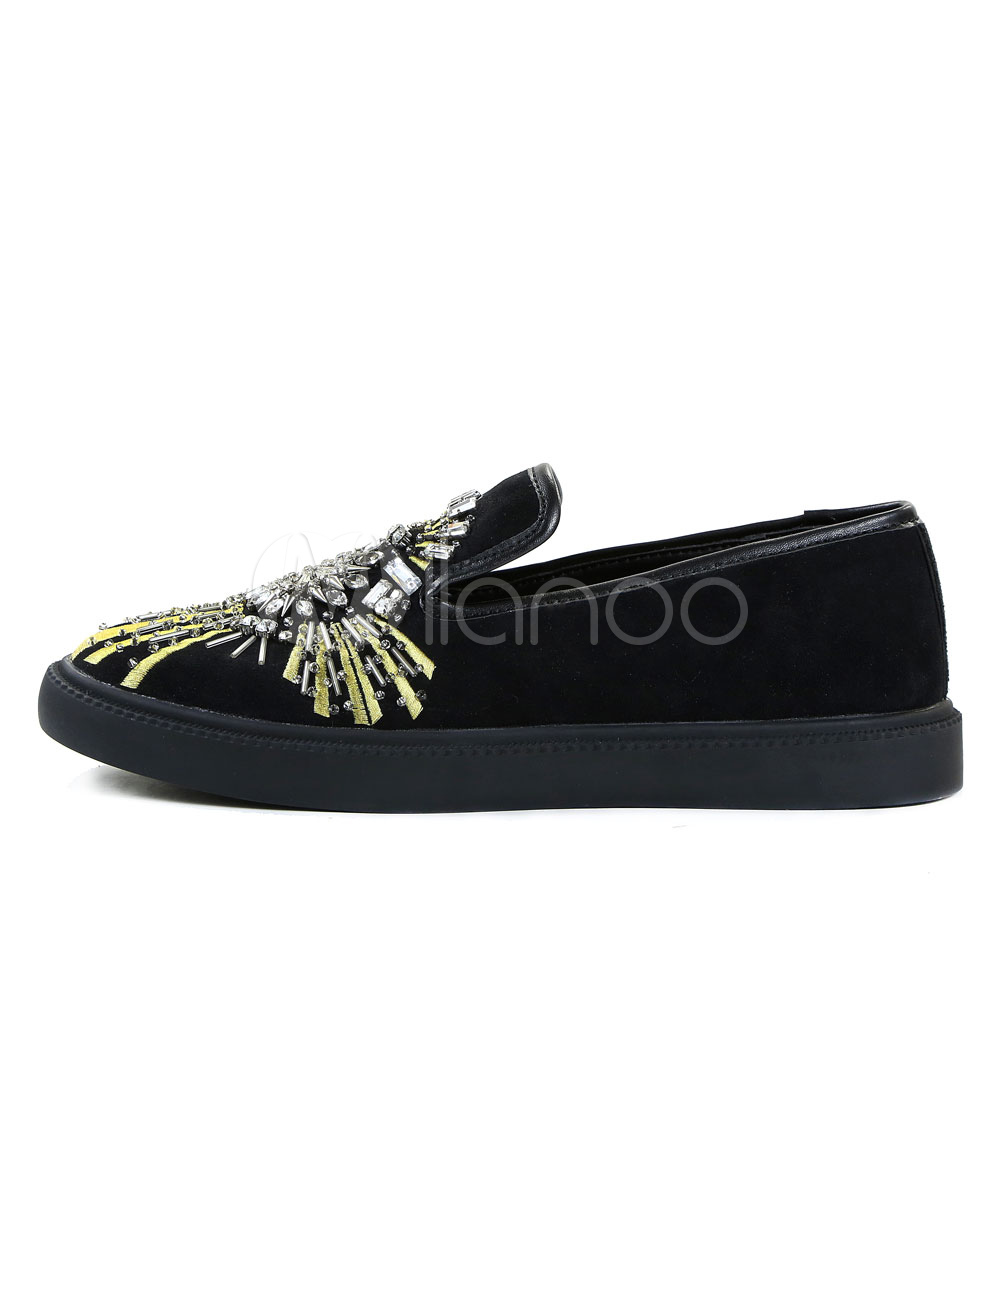 d6d8ab9c344f1 Men s Black Loafers Suede Round Toe Rhinestones Slip On Flat Shoes ...